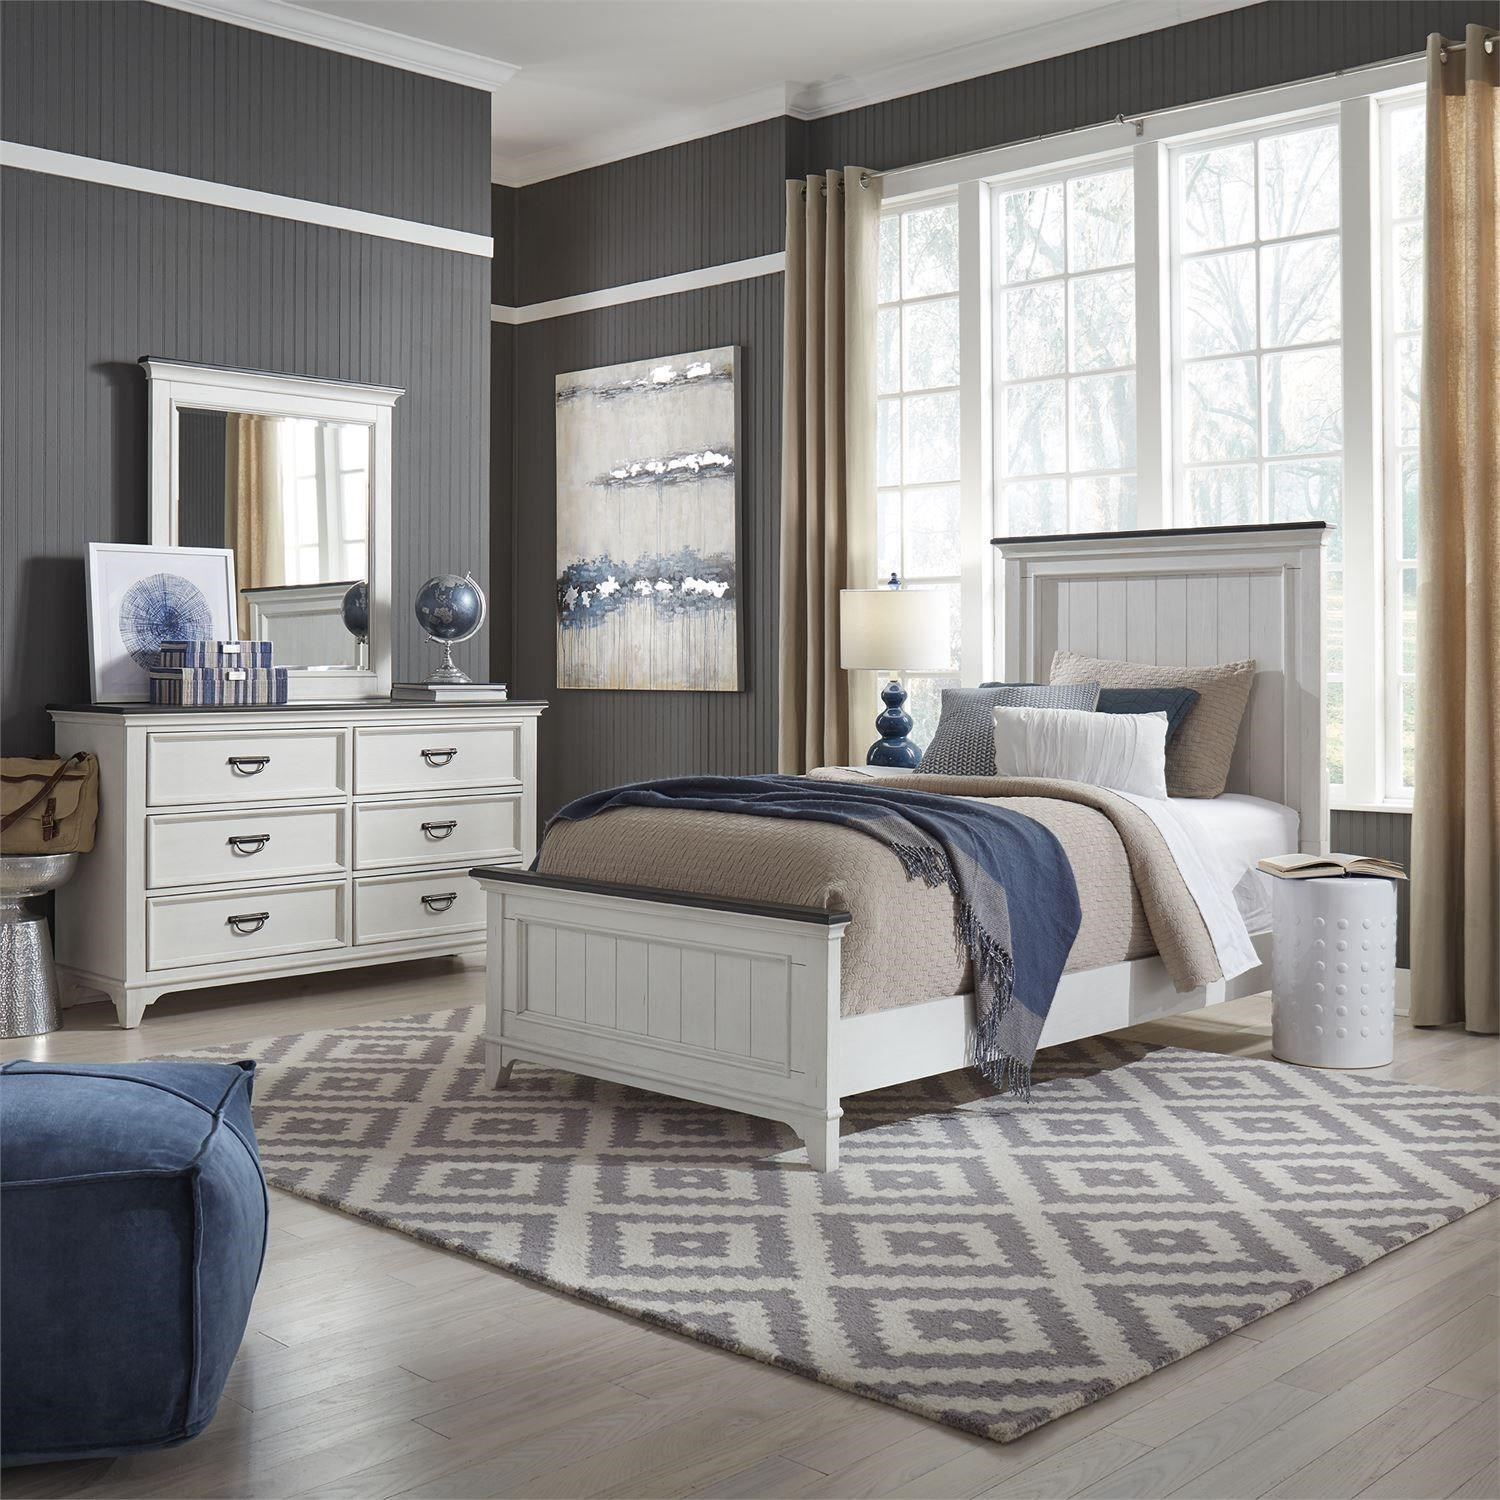 Allyson Park Twin Panel Bed, Dresser & Mirror by Freedom Furniture at Ruby Gordon Home